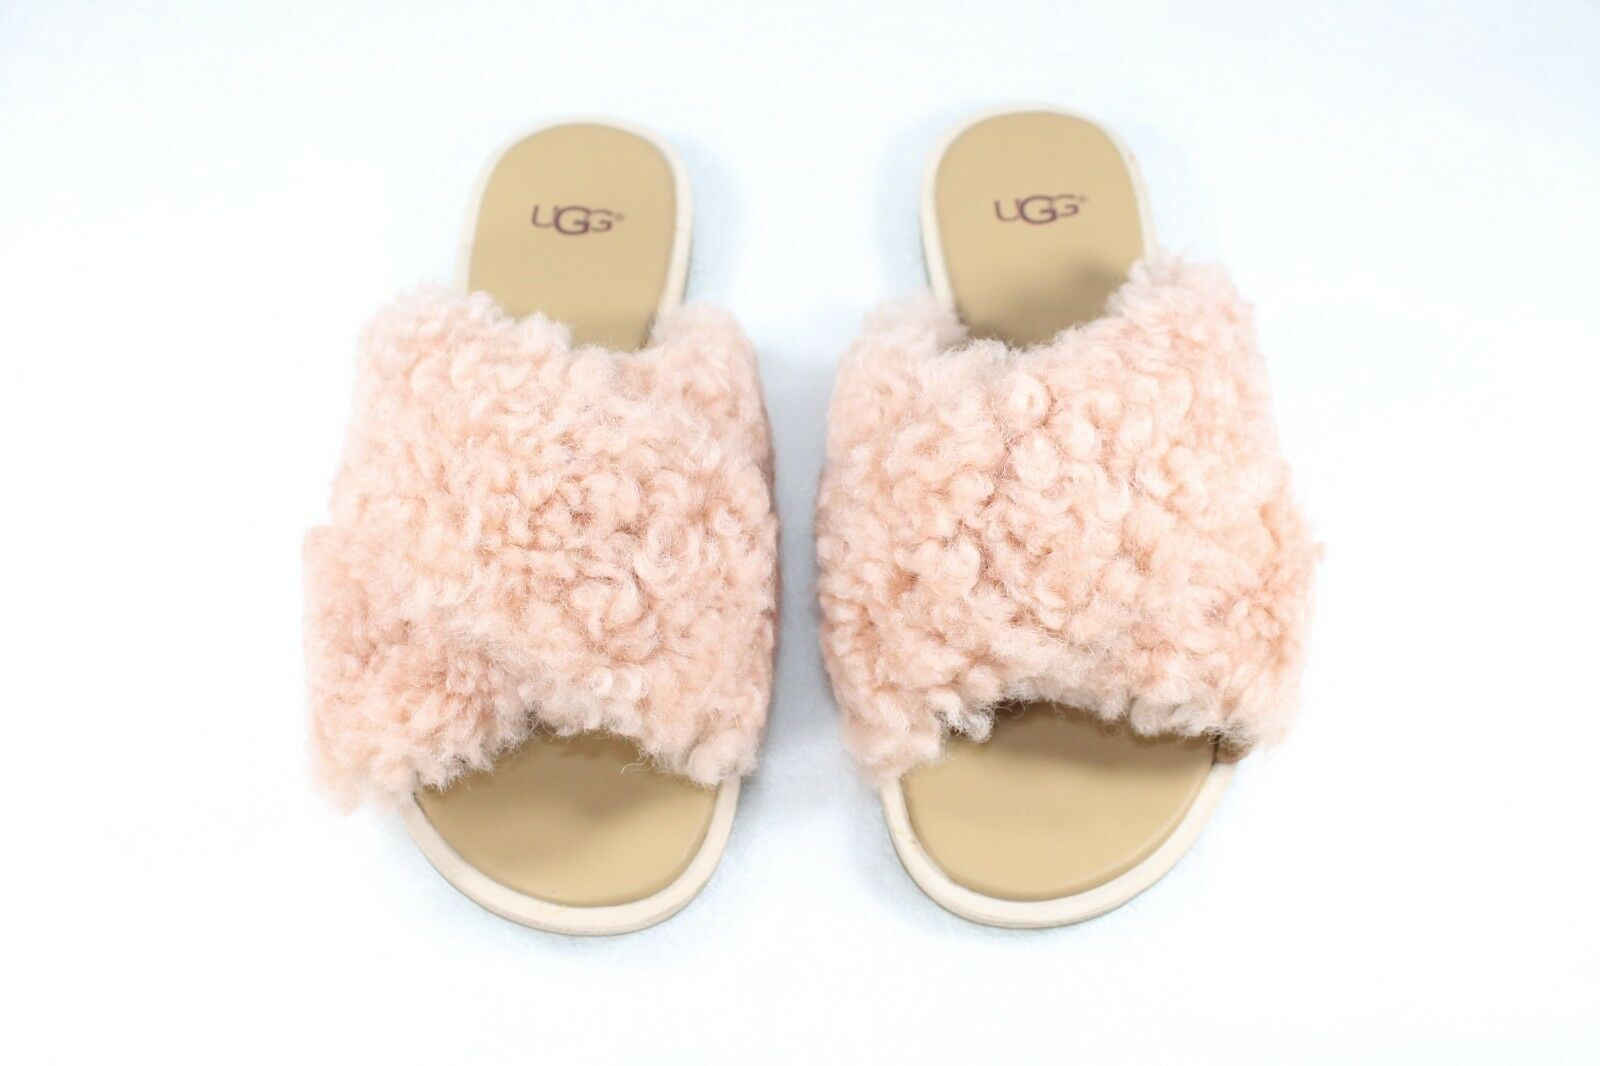 a2524965b4c UGG Australia Suntan Curly Sheepskin Leather Joni Slide Women's Sandals  1019967